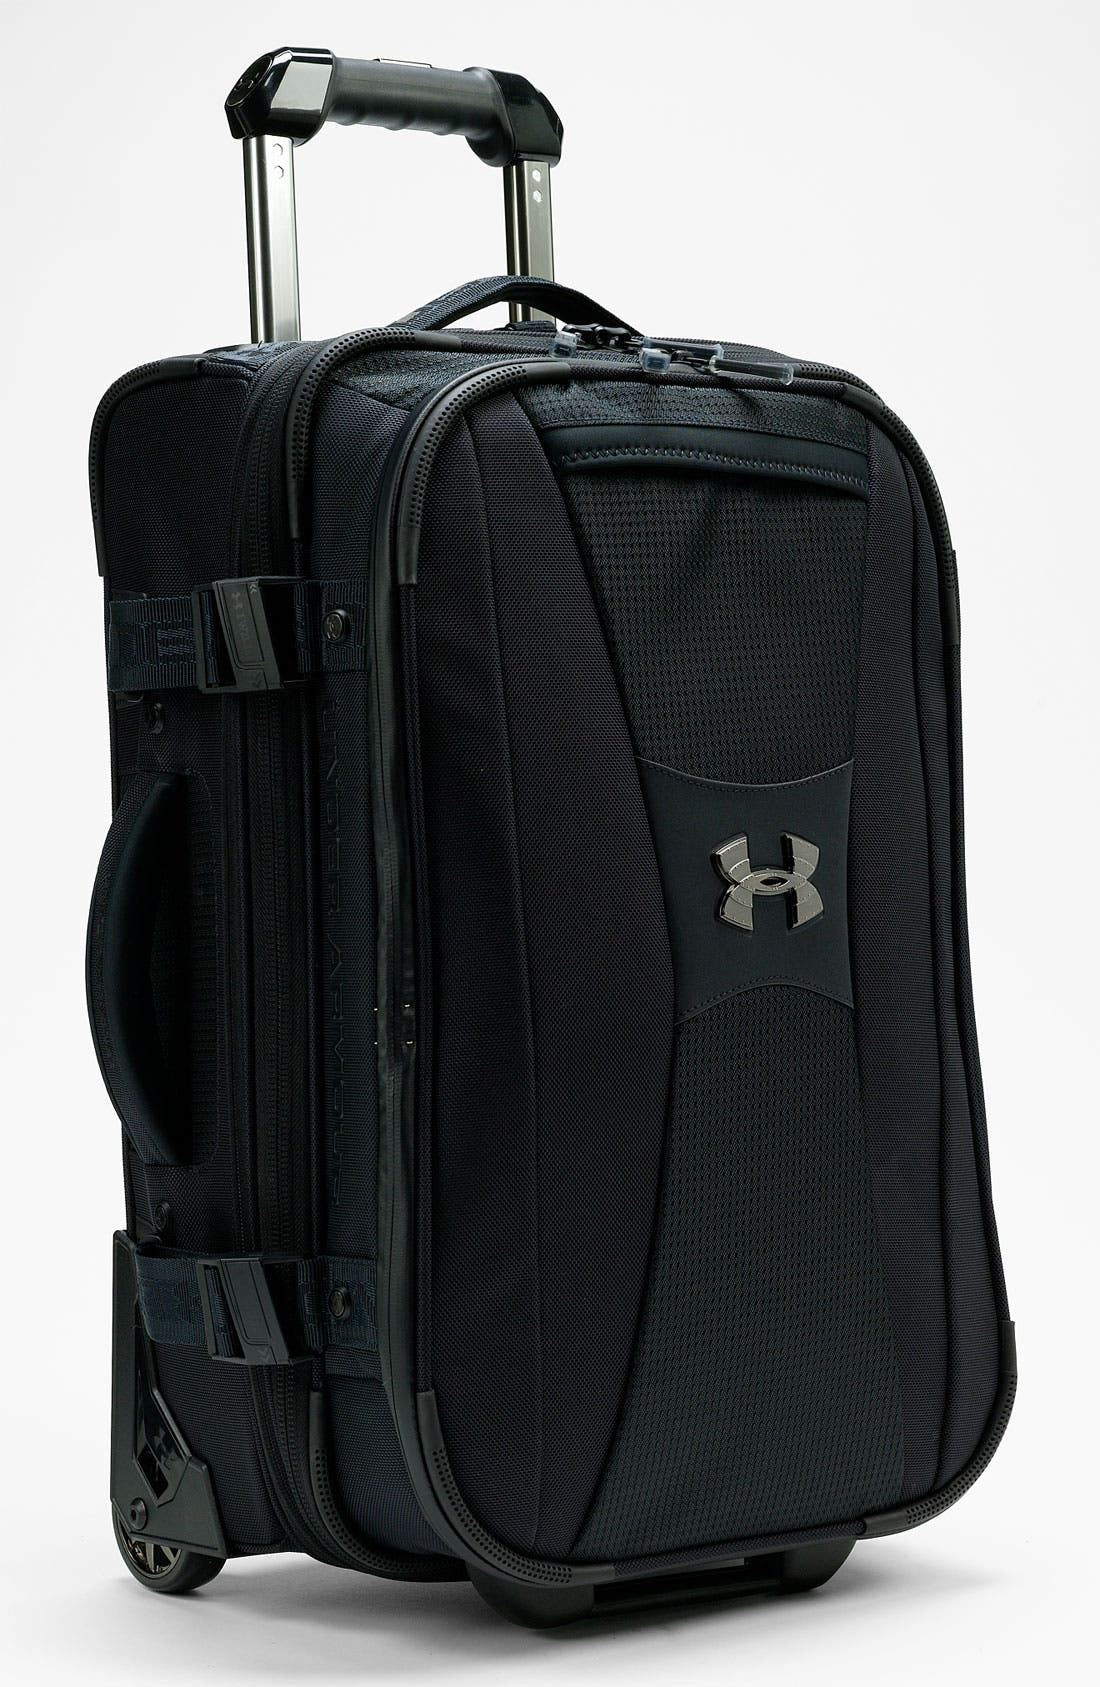 Alternate Image 1 Selected - Under Armour 'Elite' Rolling Carry-On